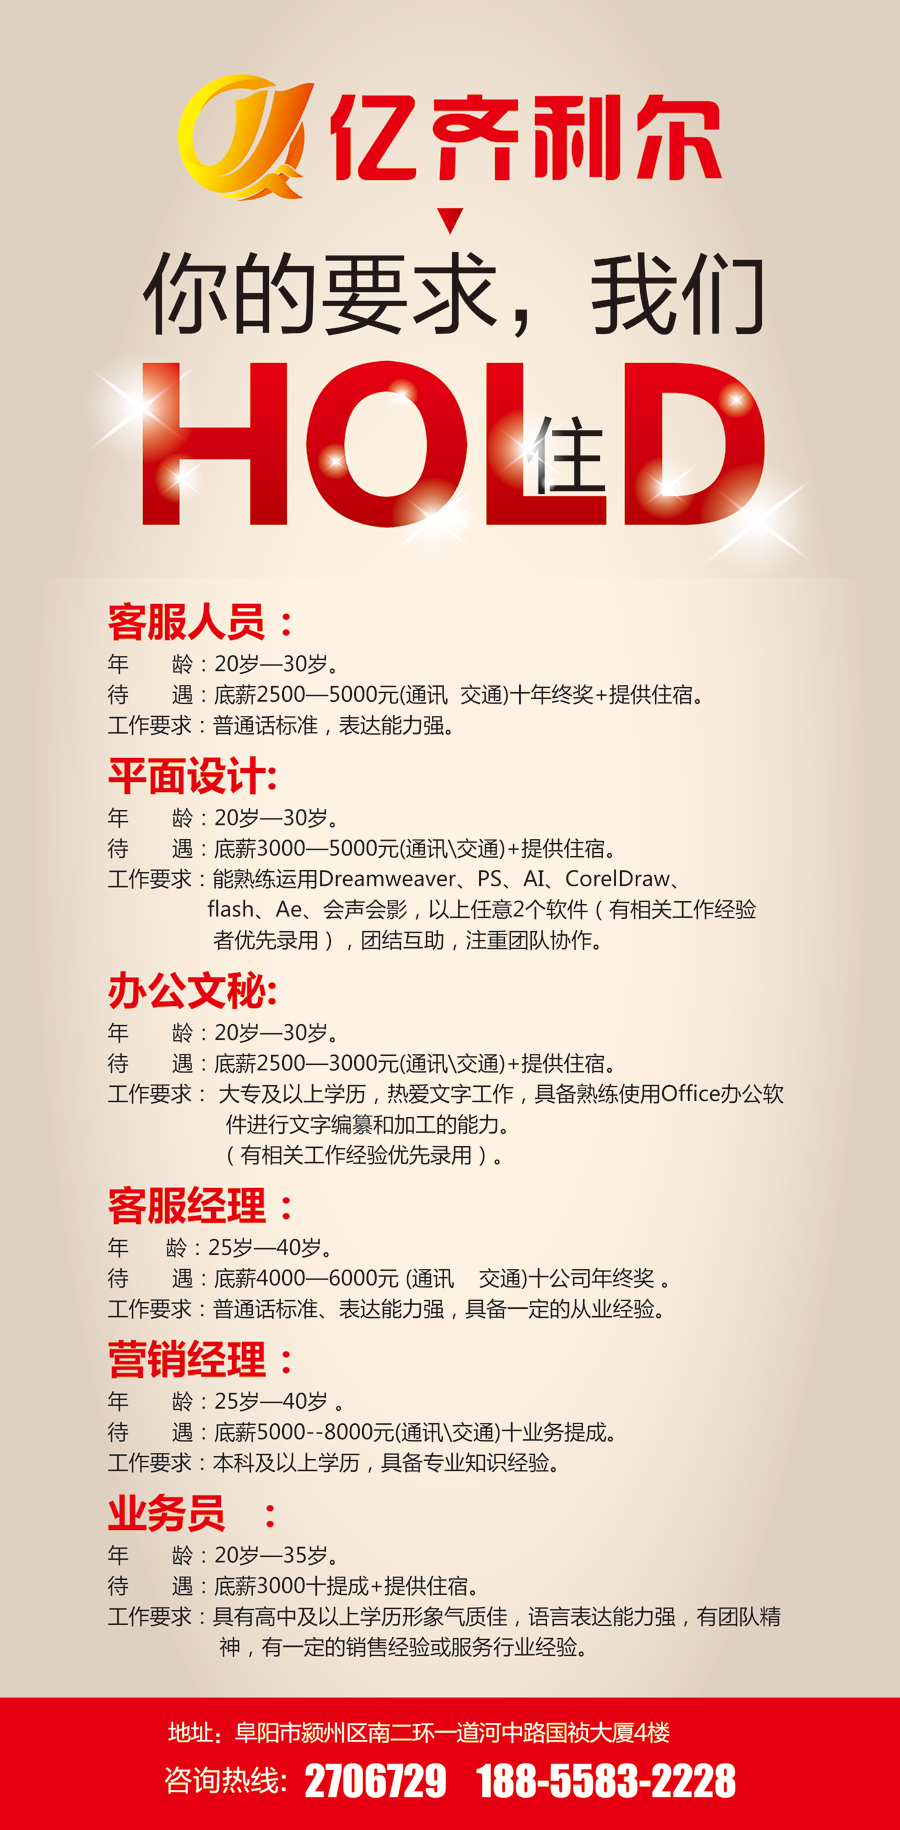 http://imgs.yiqilier.com/shop/article/05197316706433160.png